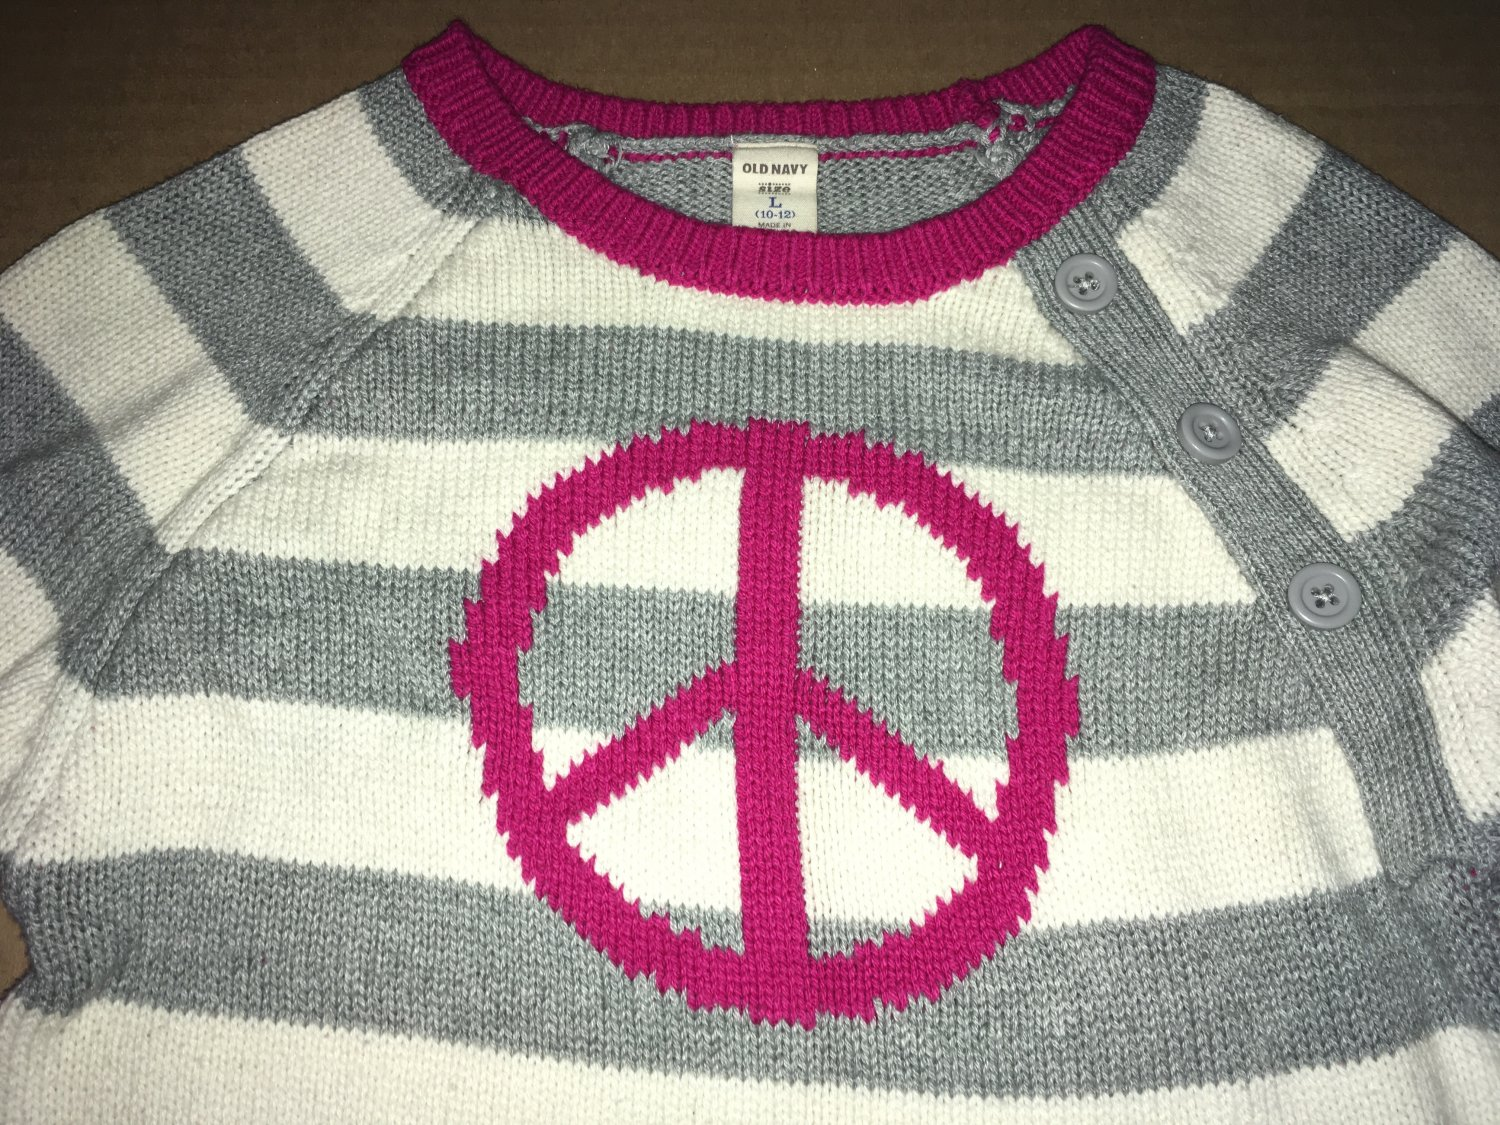 OLD NAVY Girls Sz 10-12 Peace Sign Sweater Dress gray/white stripe & pink accent